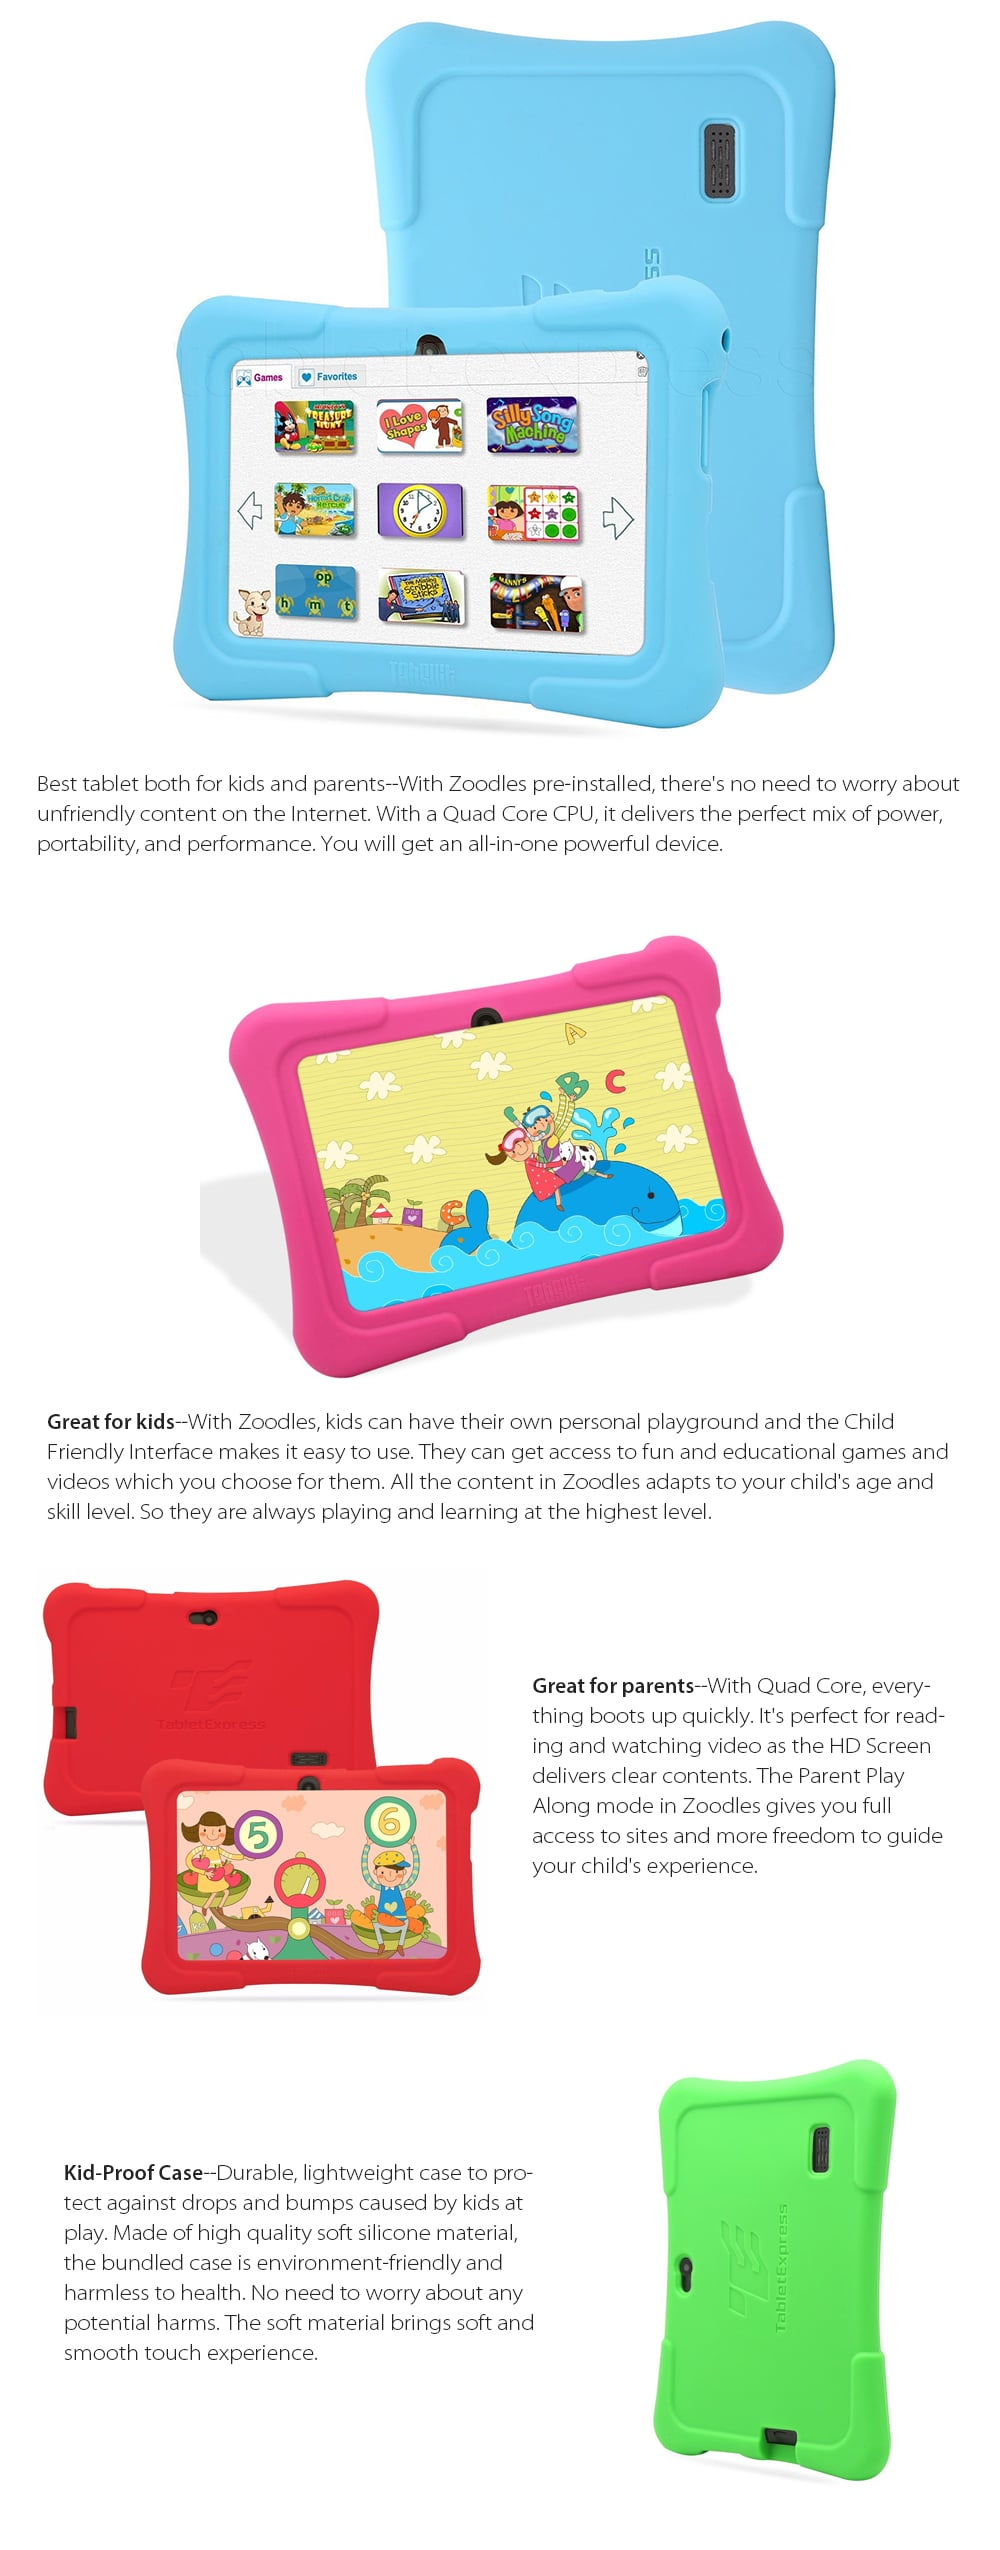 7-Inch Android Kids Tablet Great For Kids And Parents